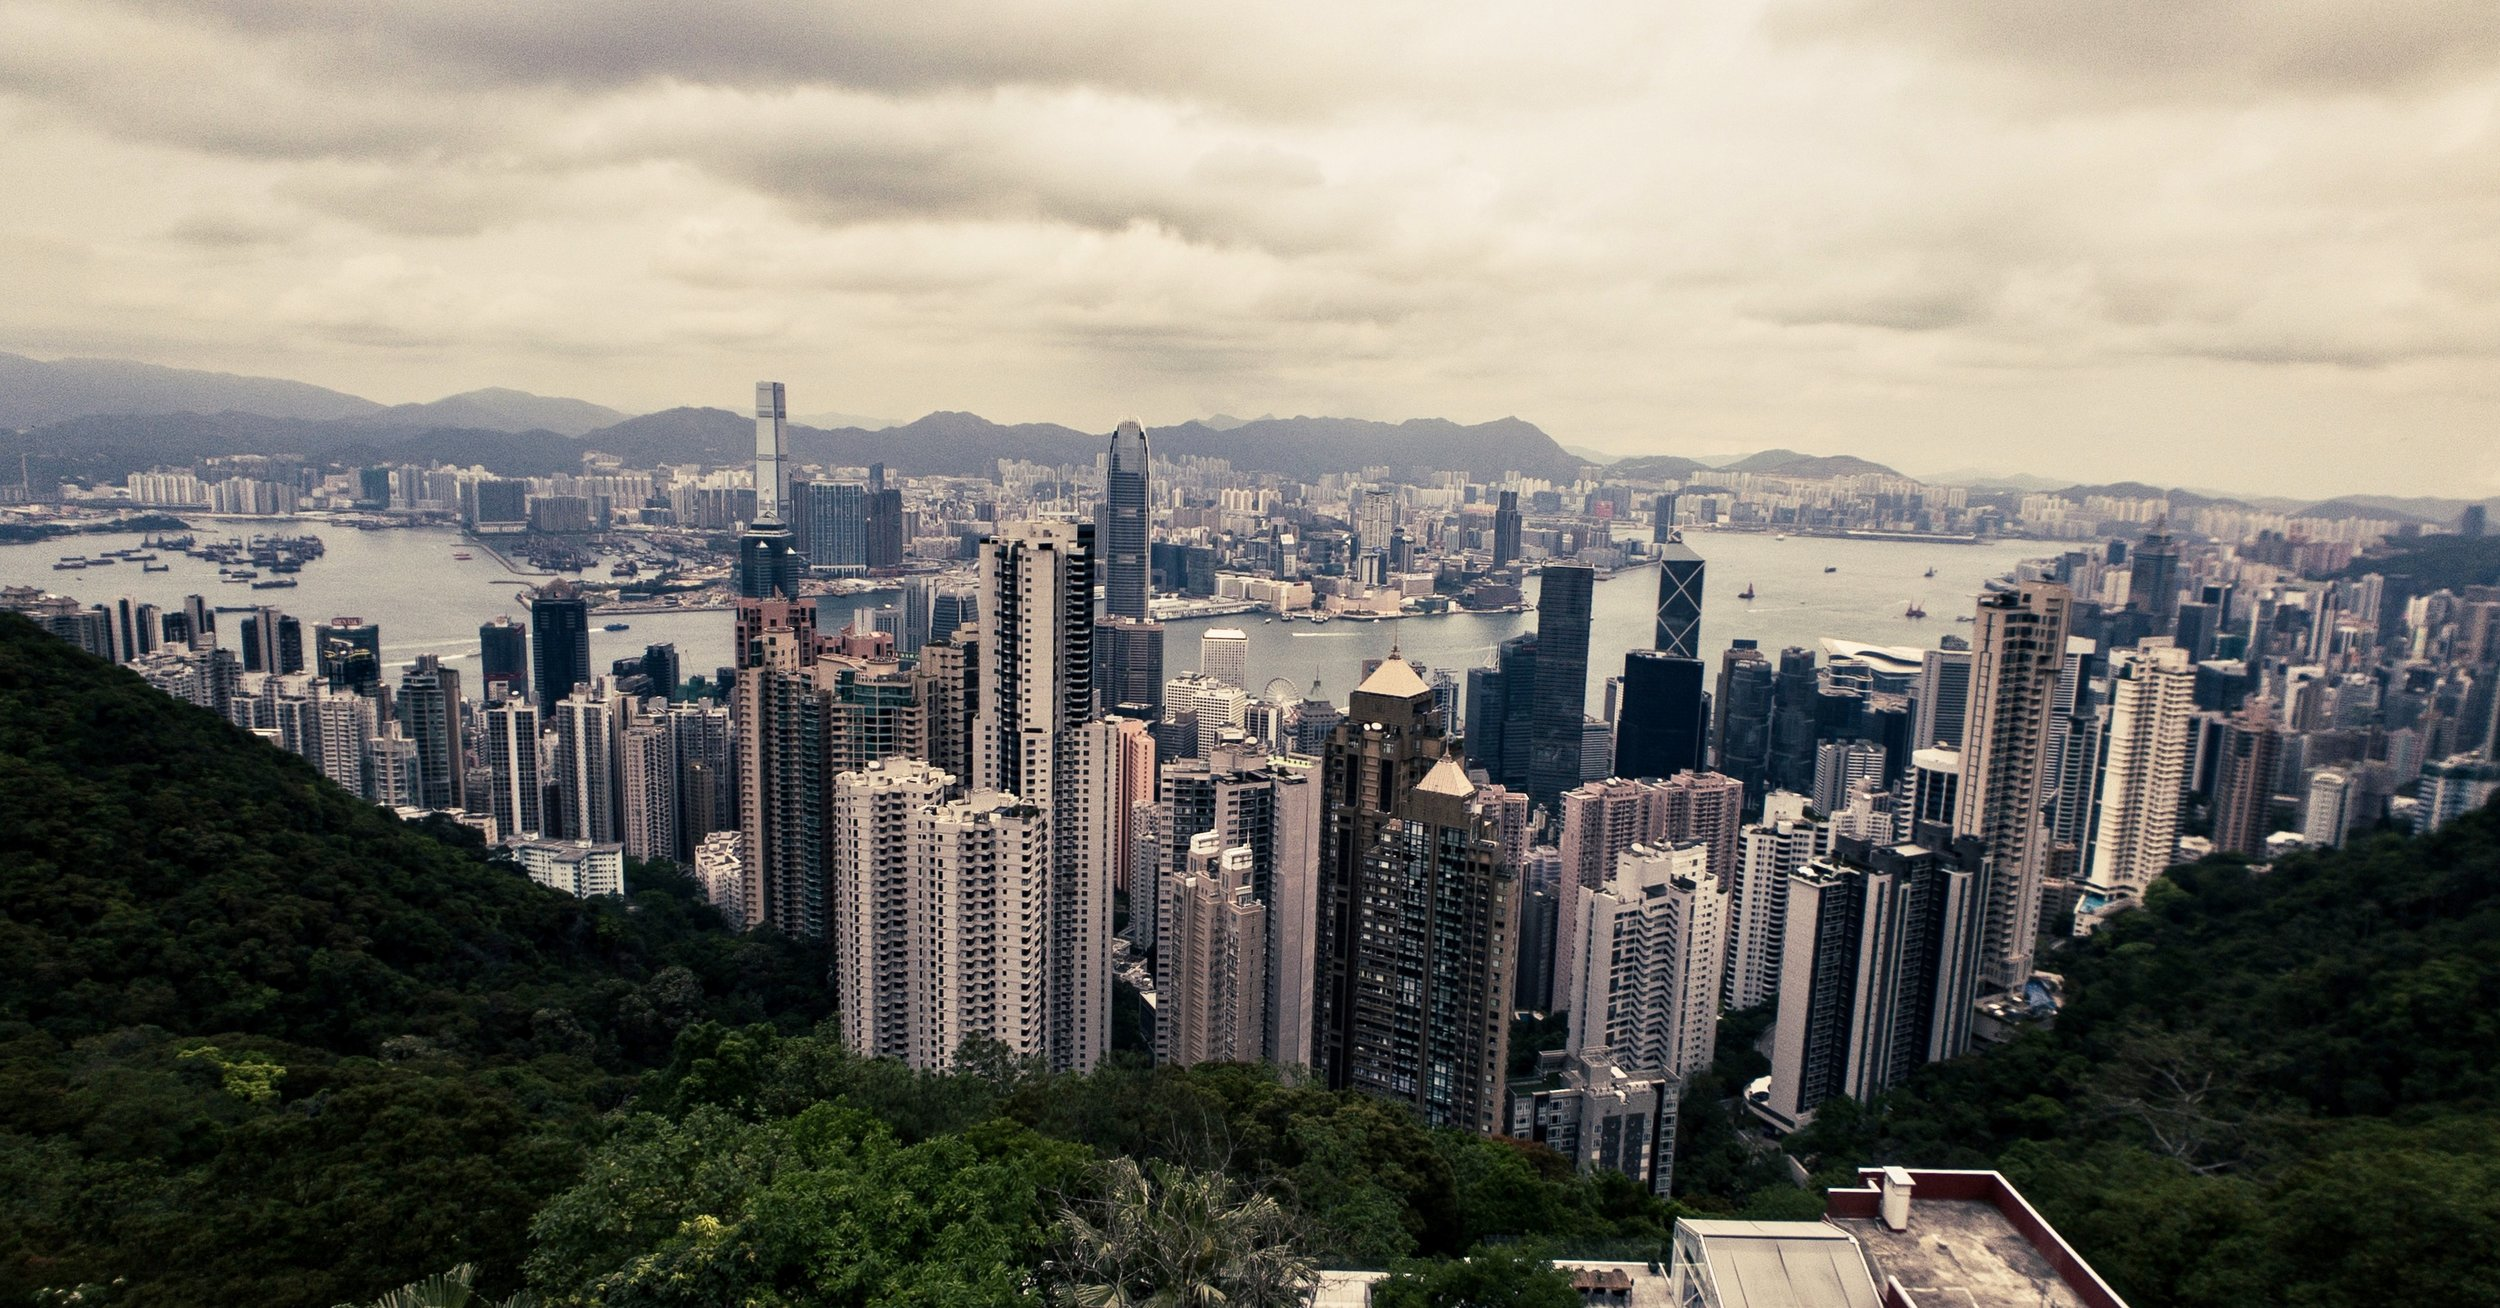 Easy cityscape after a hike up Victoria Peak - Wide 18mm Lens + iPhone X